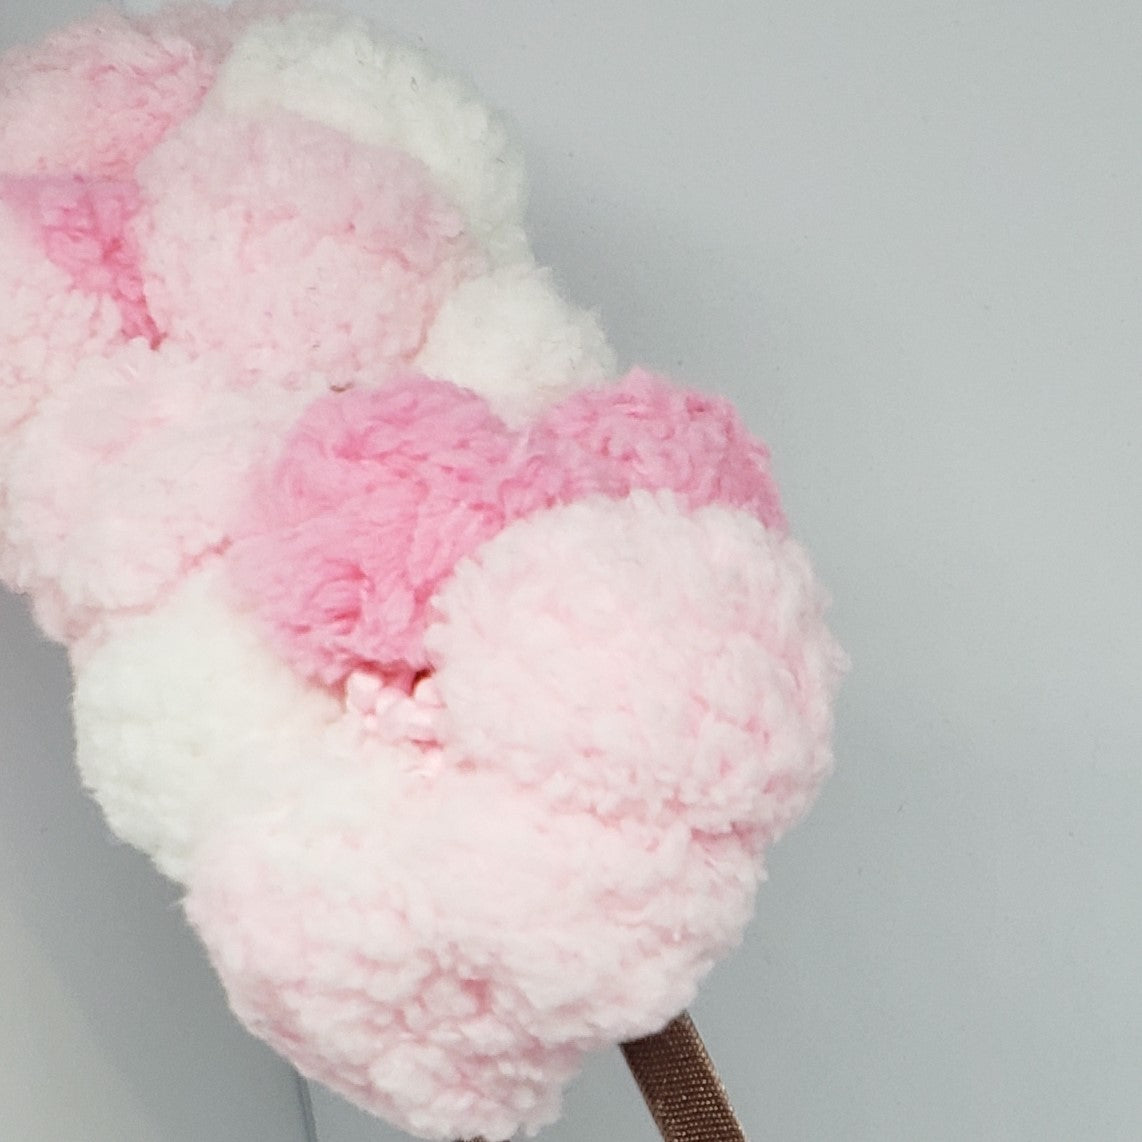 Kaelyn Cotton Candy Explosion Headband in Pink & White - Houzz of DVA Boutique